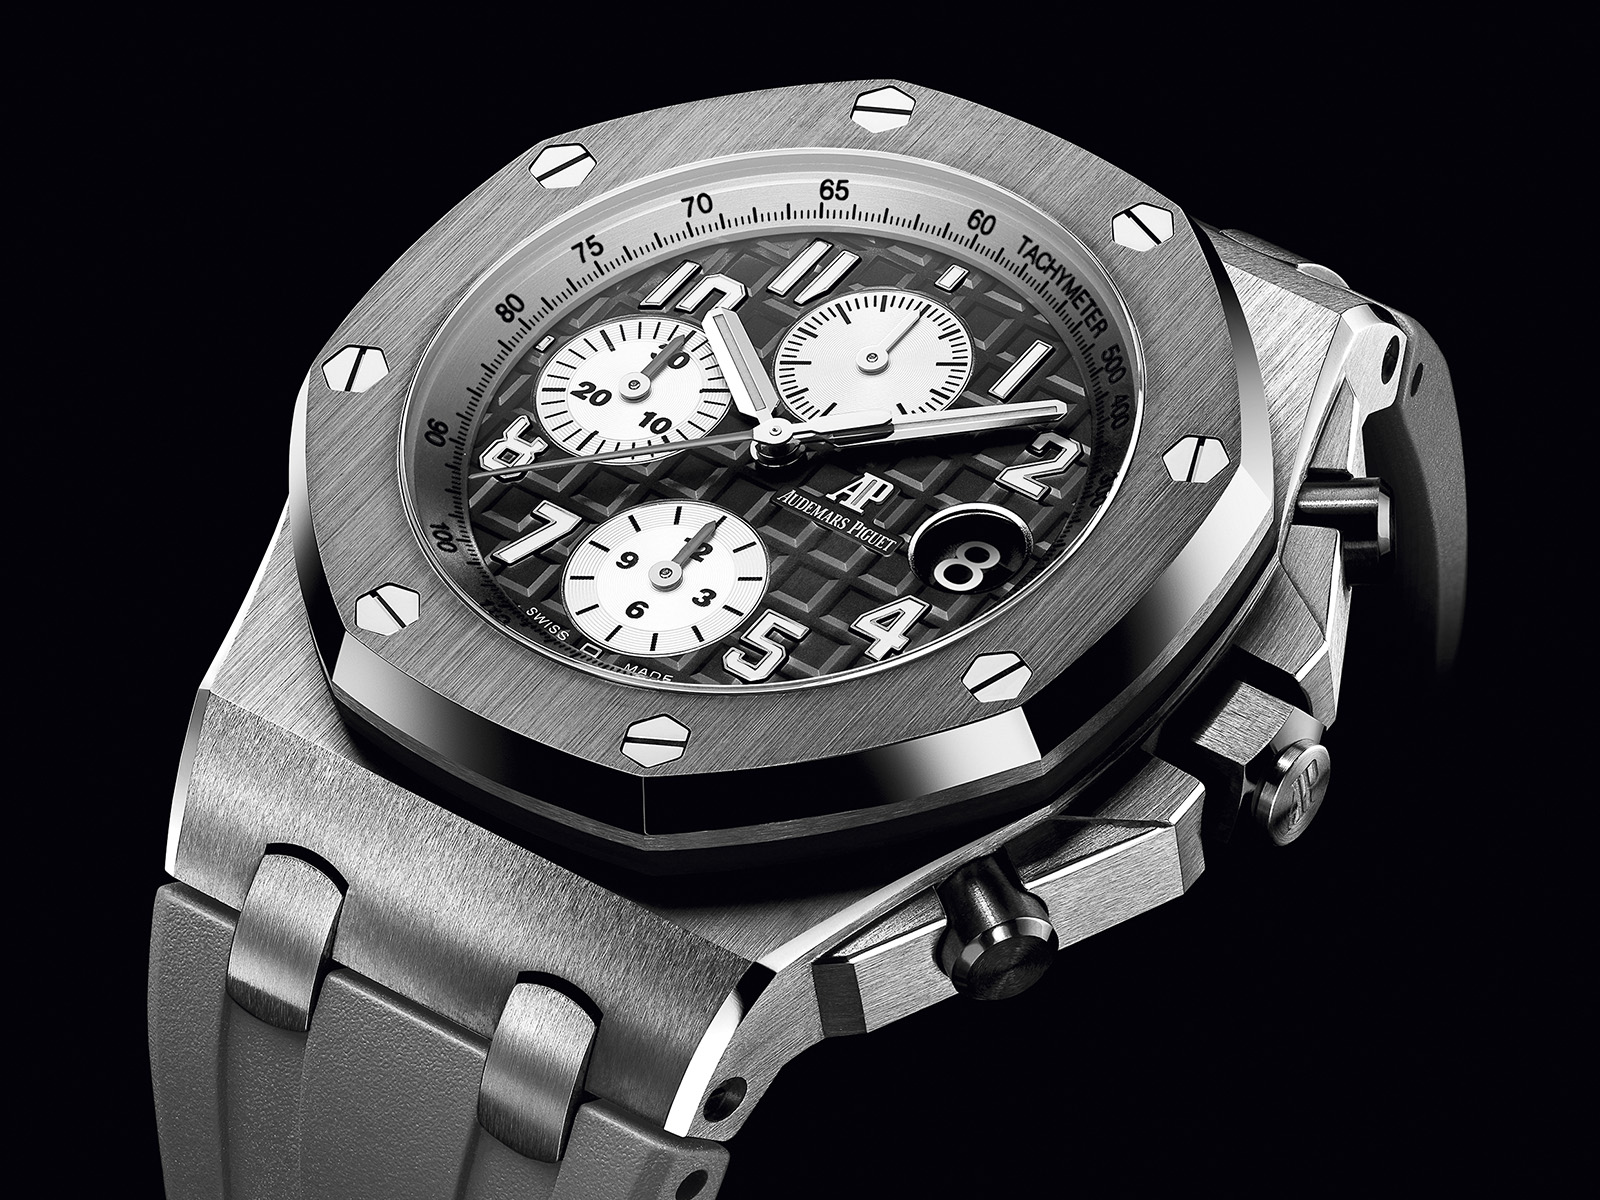 Audemars Piguet Royal Oak Offshore 42 mm